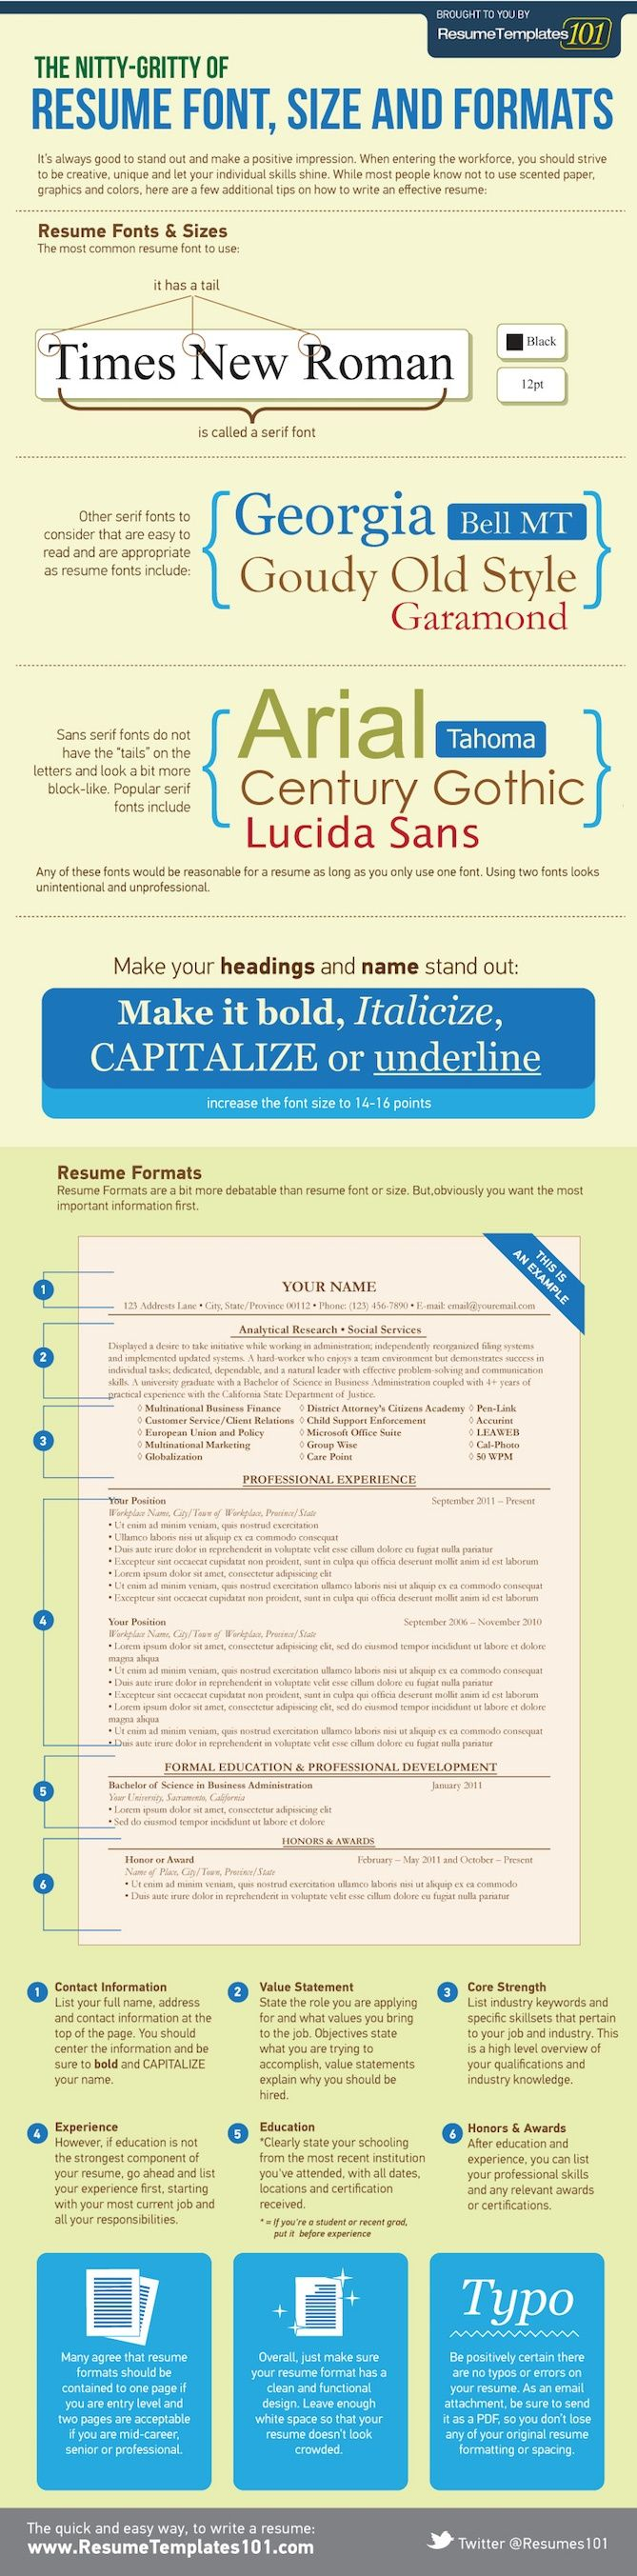 best ideas about resume writing resume resume how to properly format your resume infographic via hubspot